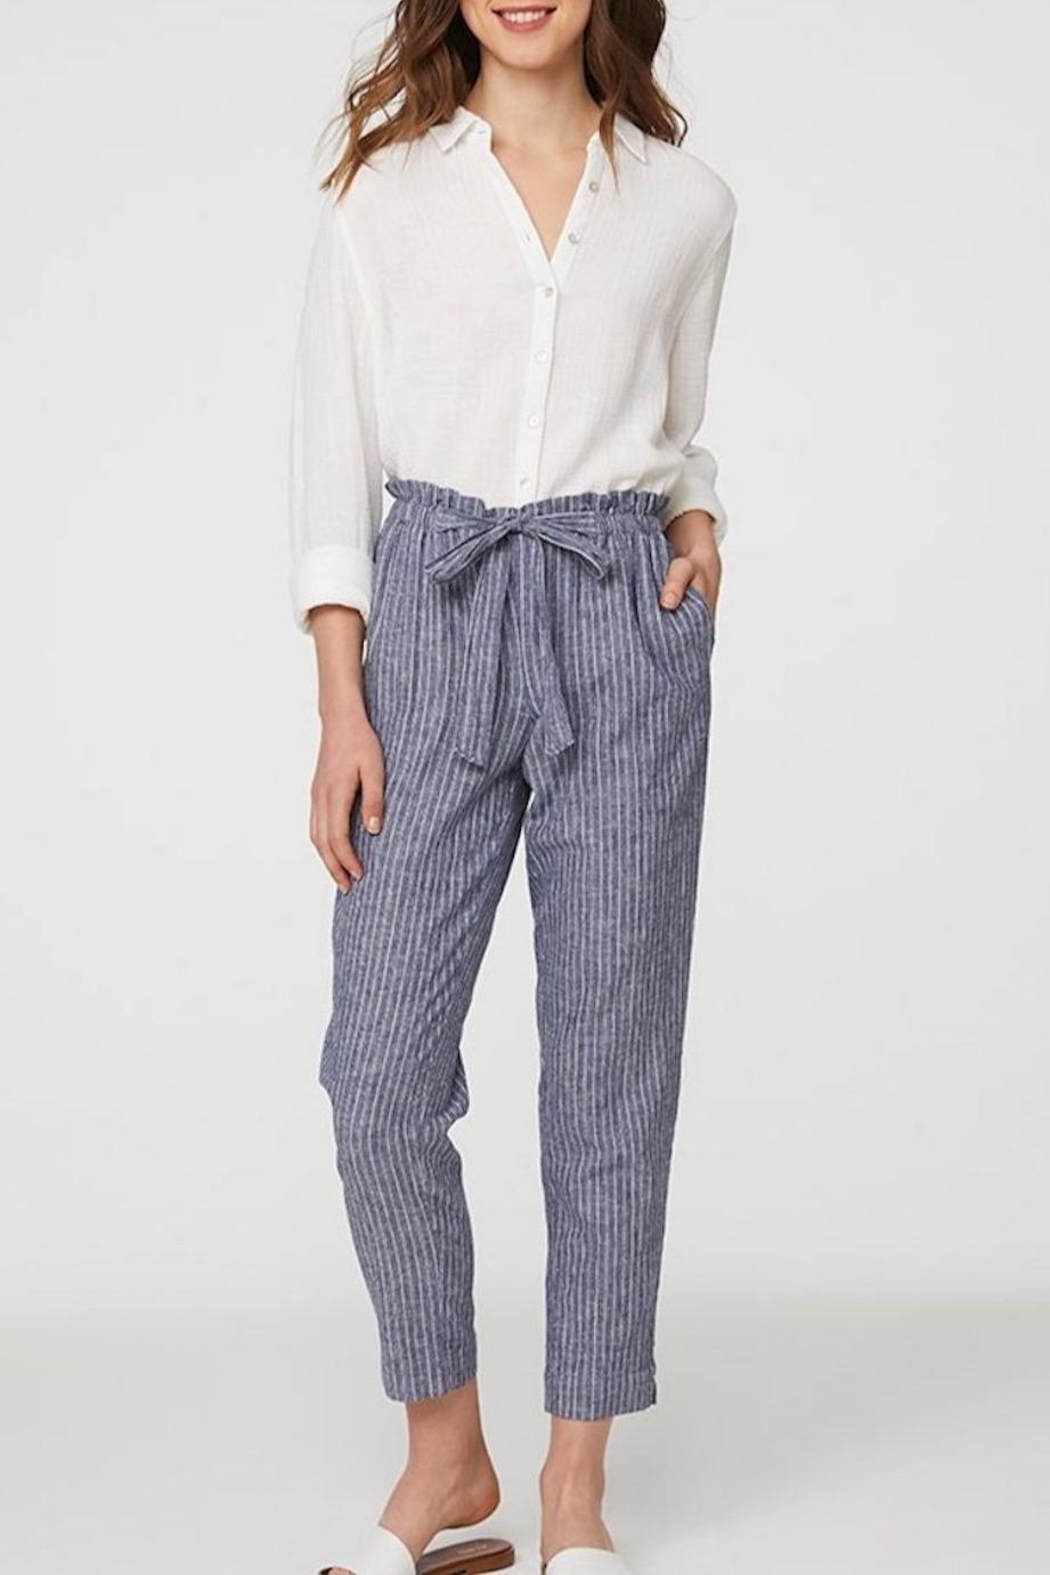 beachlunchlounge Striped Linen Pants - Main Image